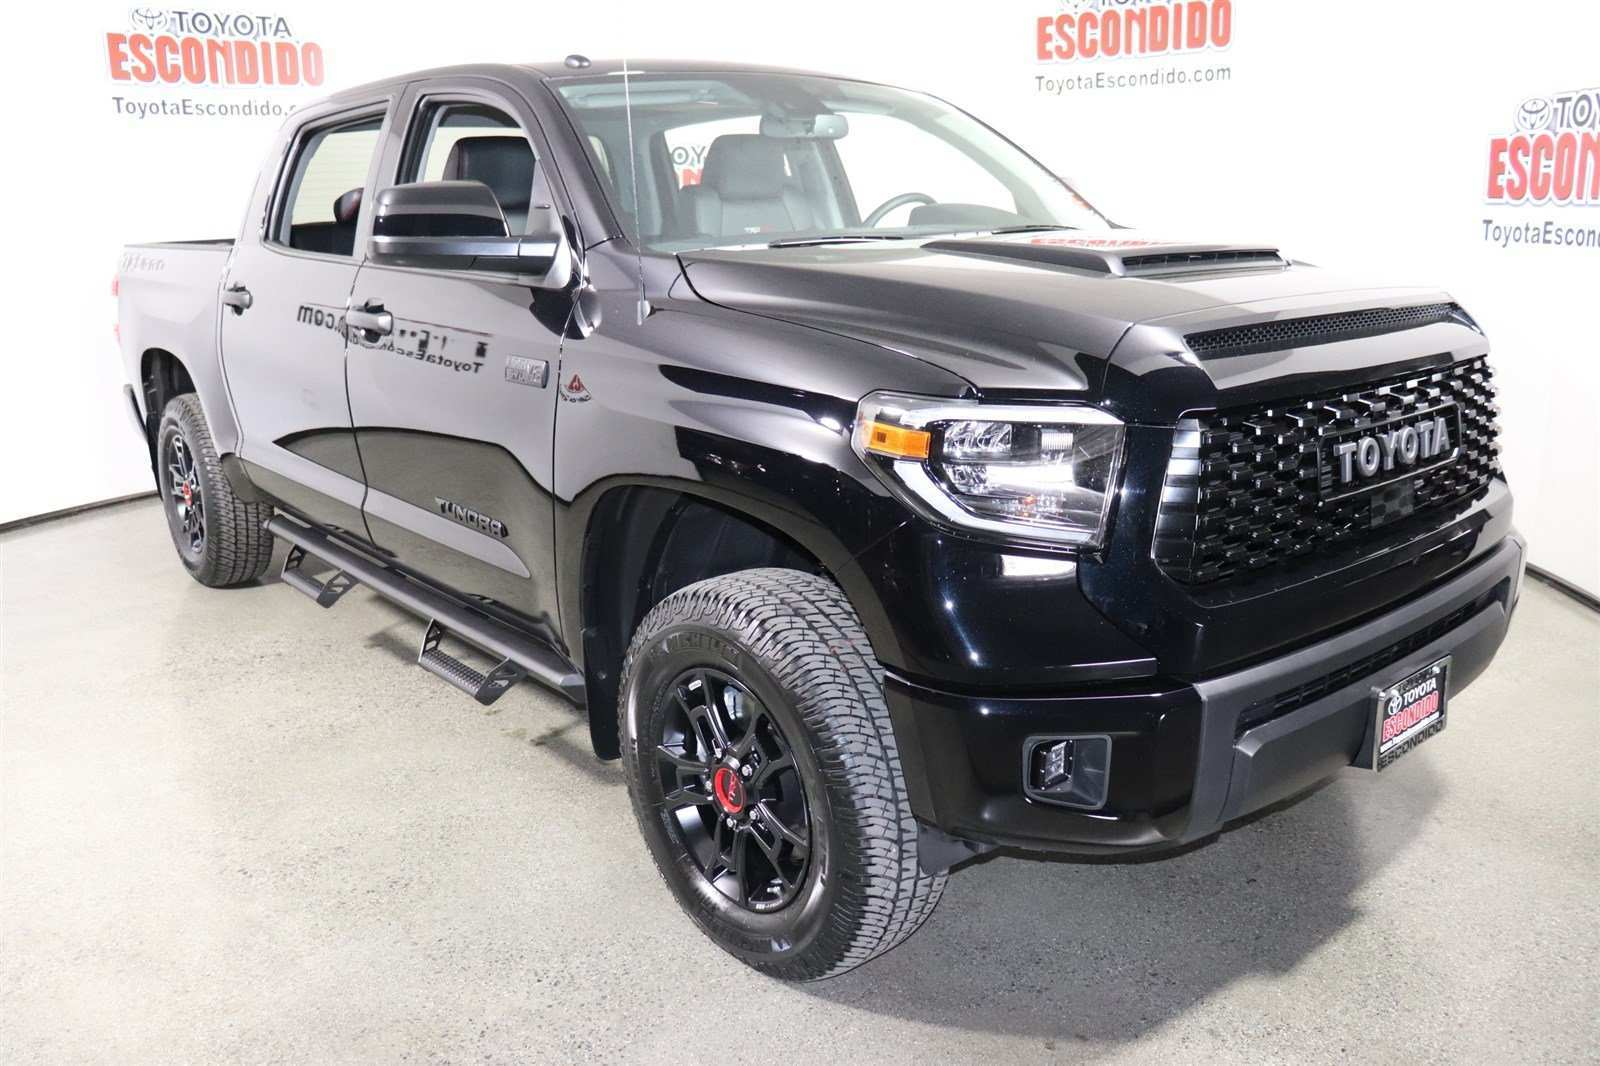 57 New Toyota Tundra Trd Pro 2019 Configurations